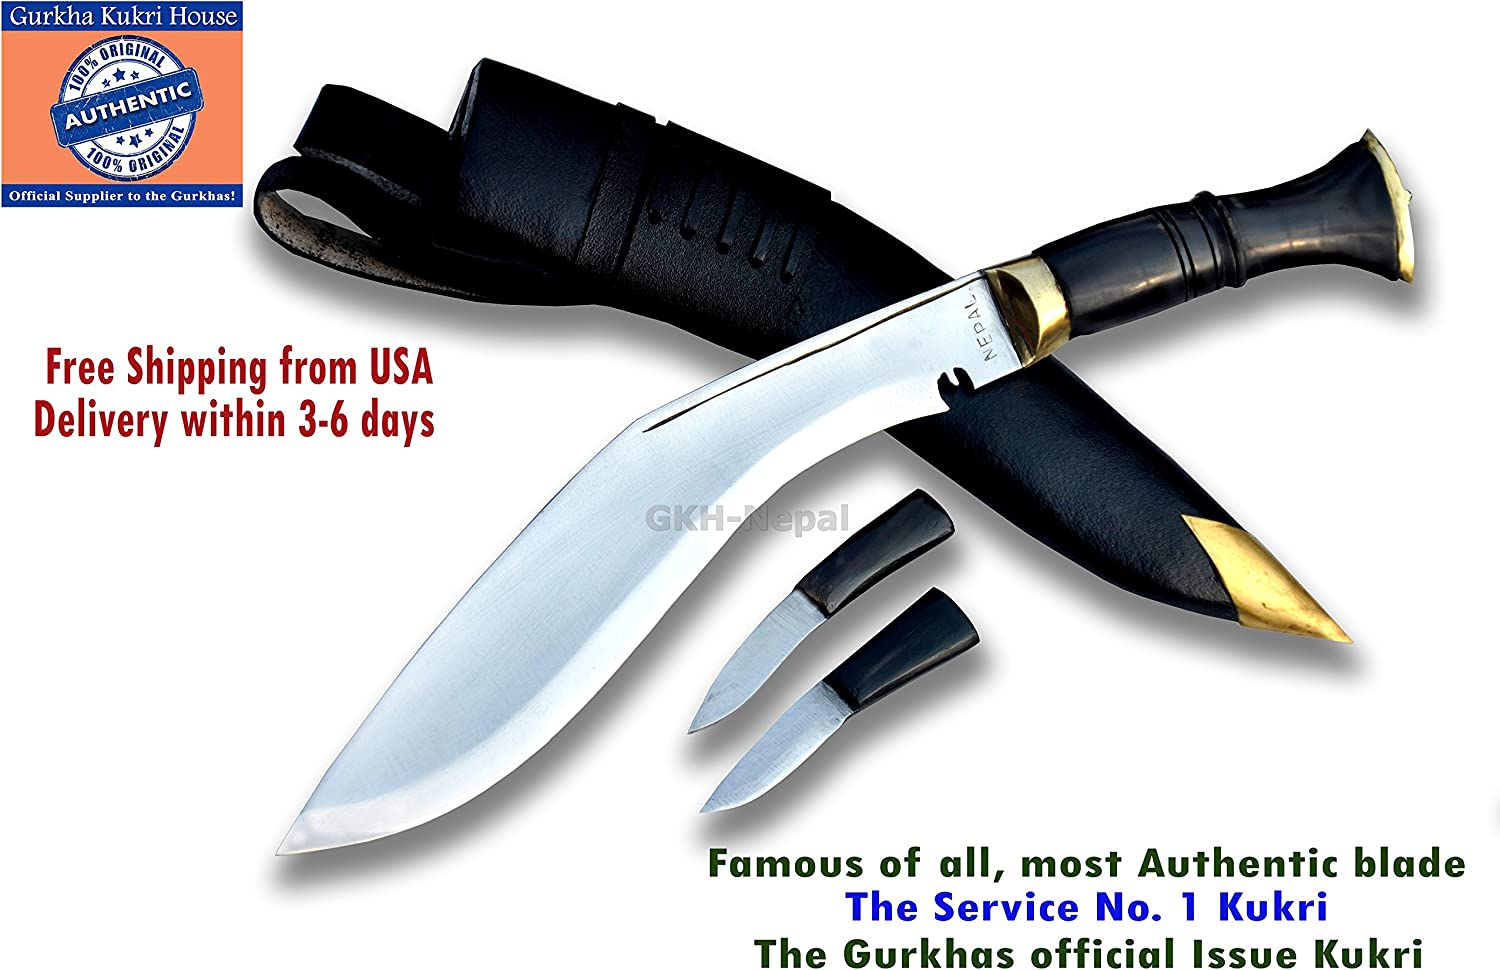 Gurkha Official Issued – Authentic Kukri Knife – 10 Blade Service No.1 Kukri Rat tail tang Highly polished blade with Black Leather Sheath-Handmade by Gurkha Kukri House in Nepal -Warehoused Ship from USA